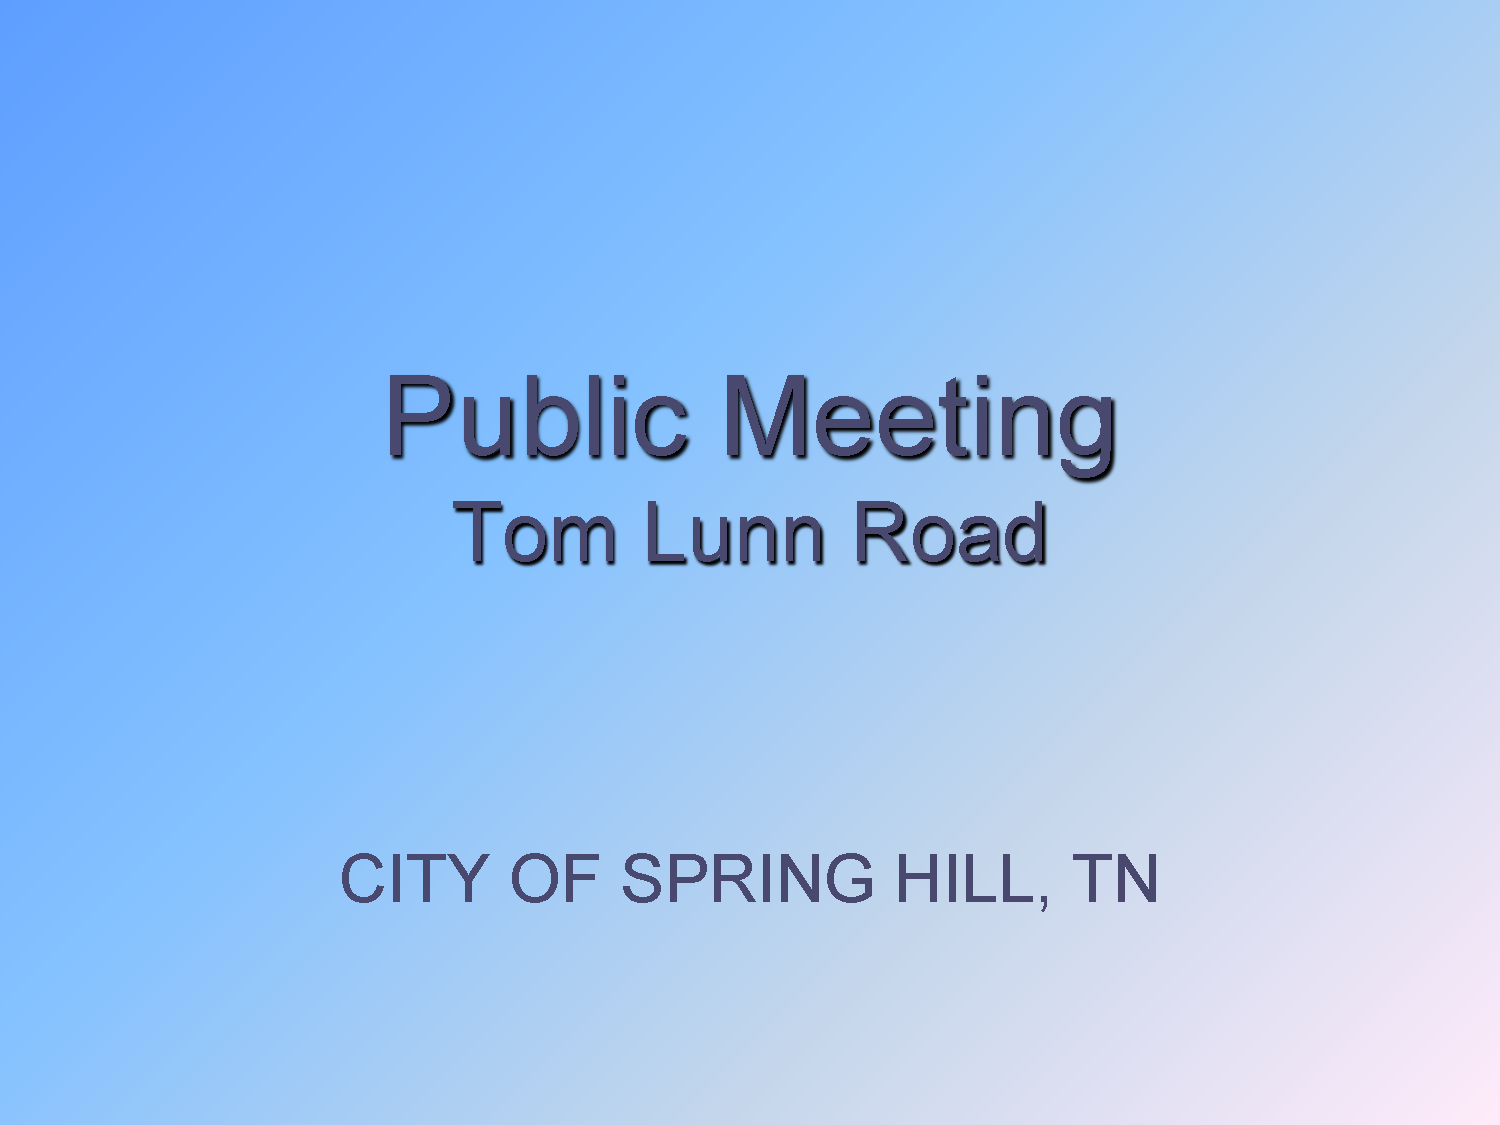 City of Spring Hill - Tom Lunn Road - Public Meeting - 01.28.20_Page_01